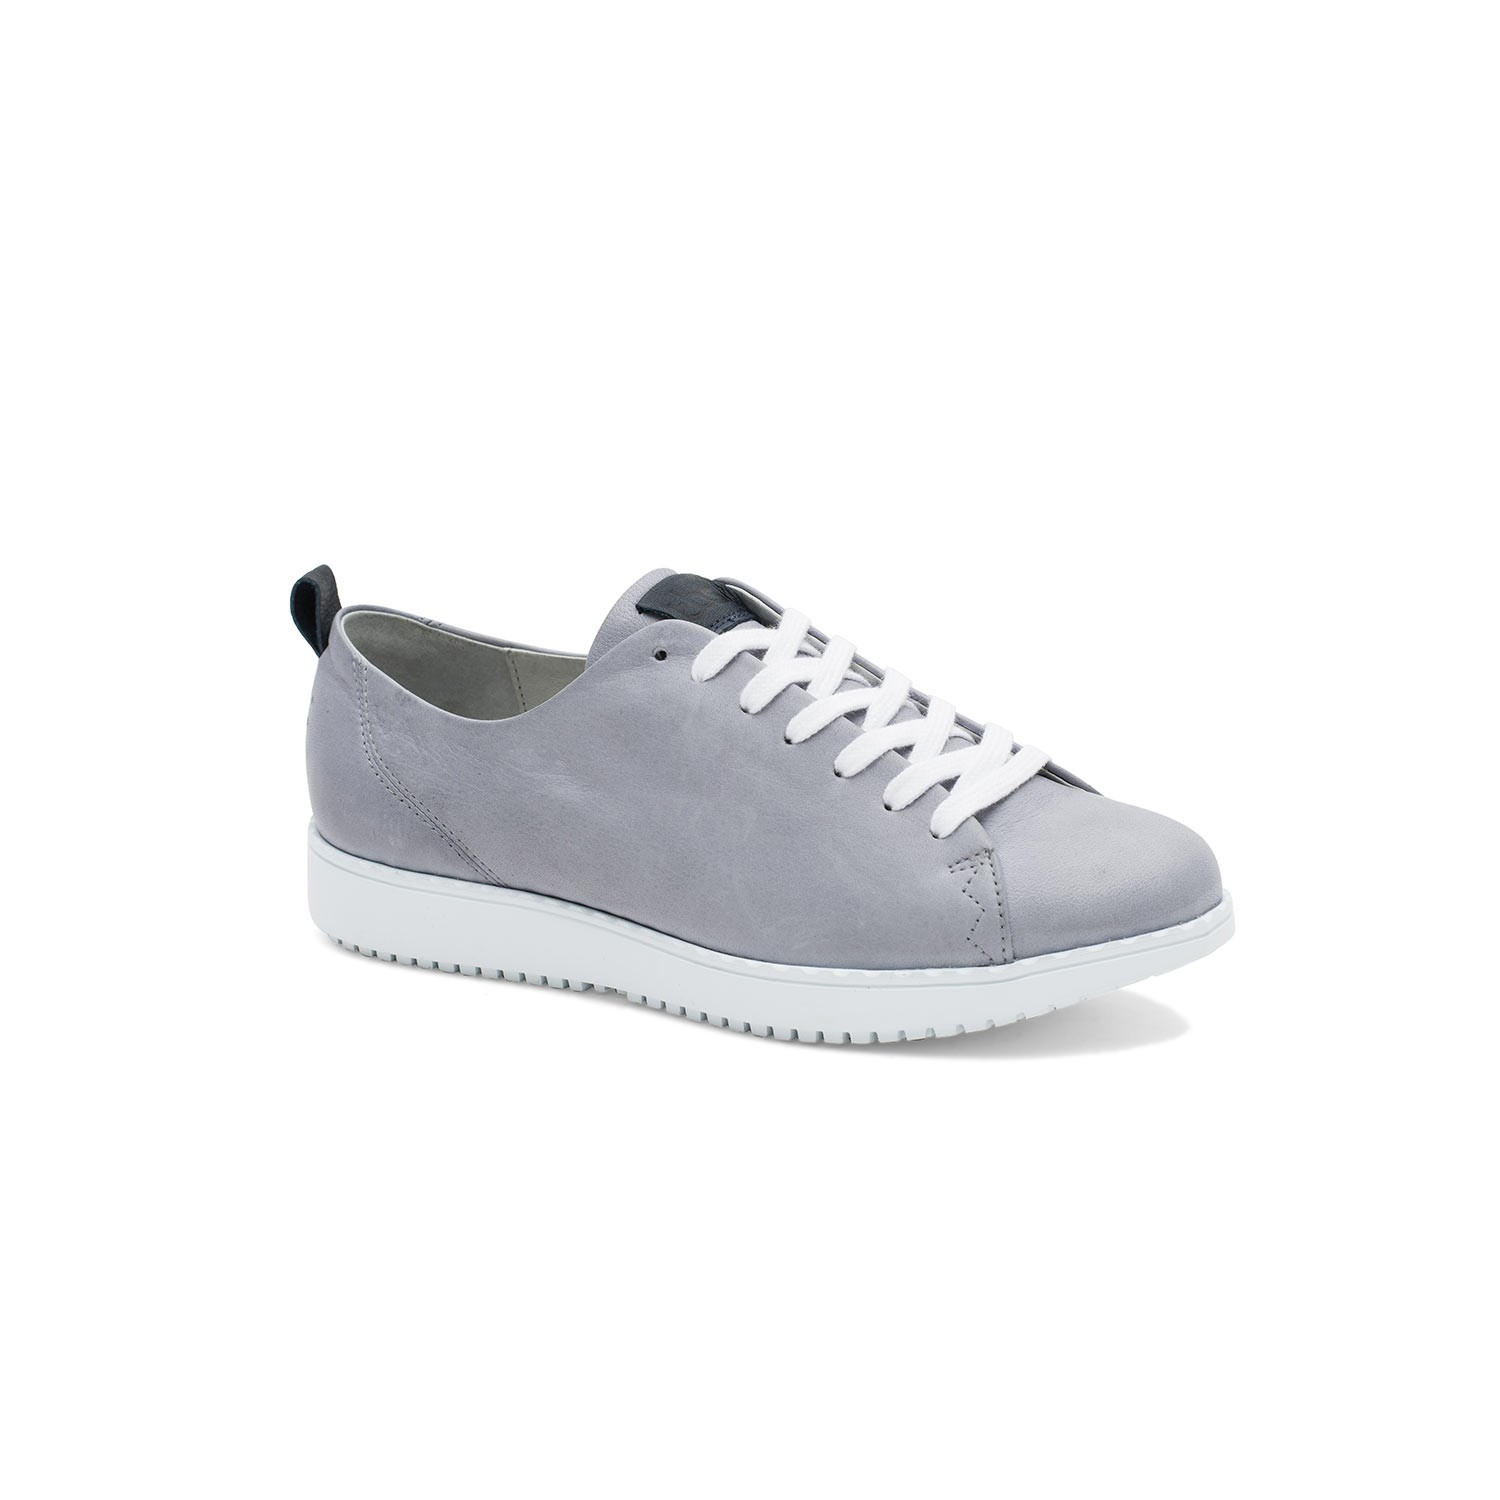 Marques Chaussure femme TBS femme Wenddie Froment